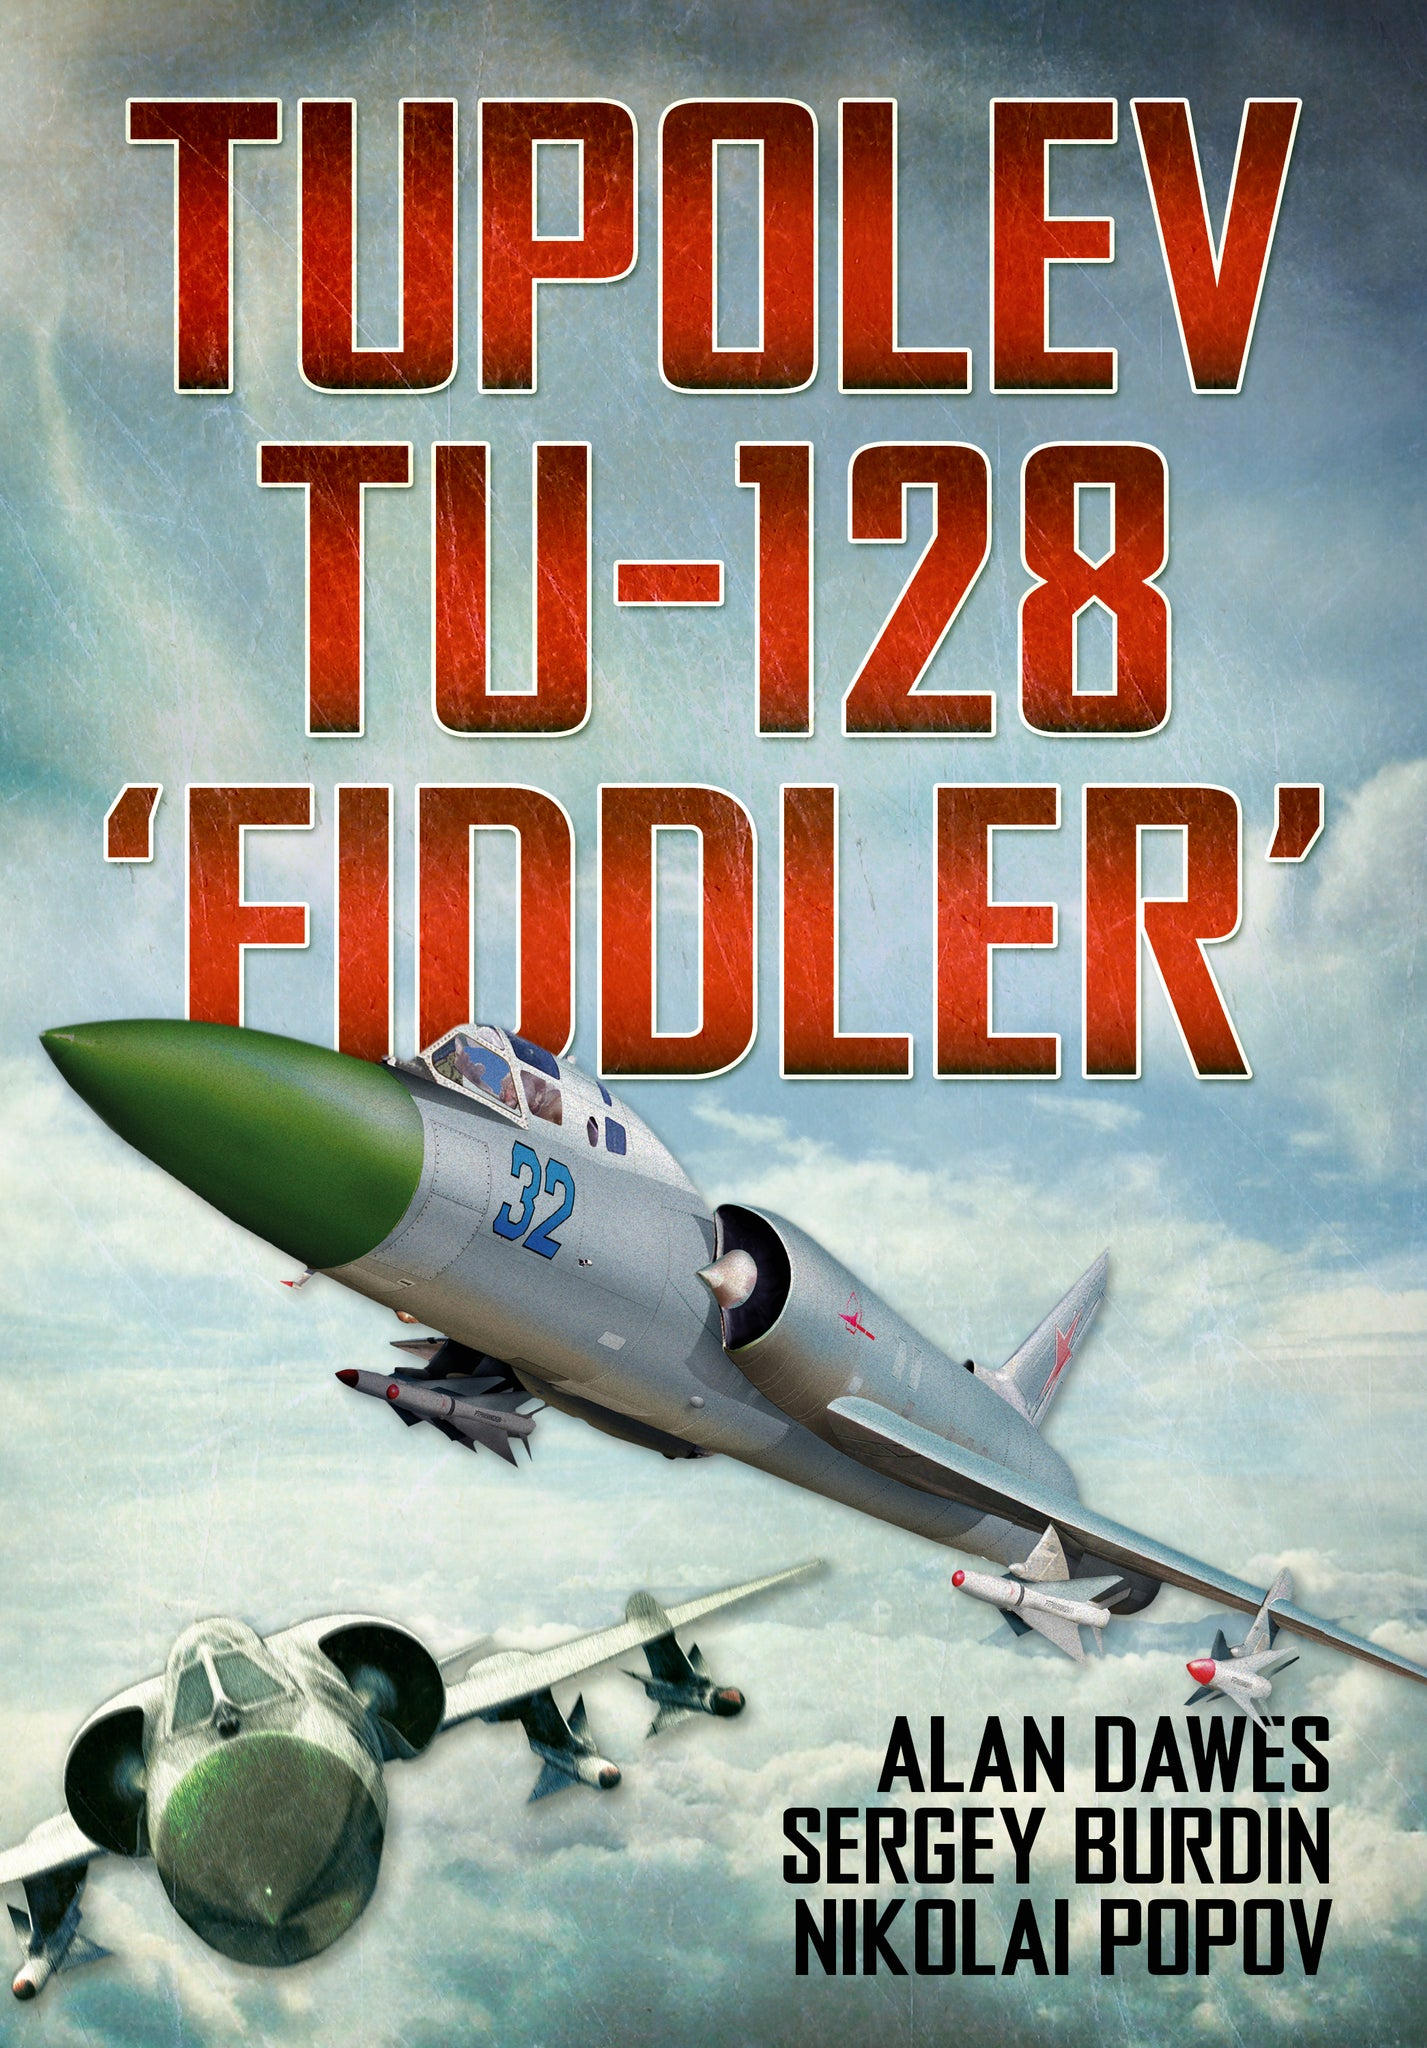 Tupolev Tu-128 'Fiddler' - available from Fonthill Media